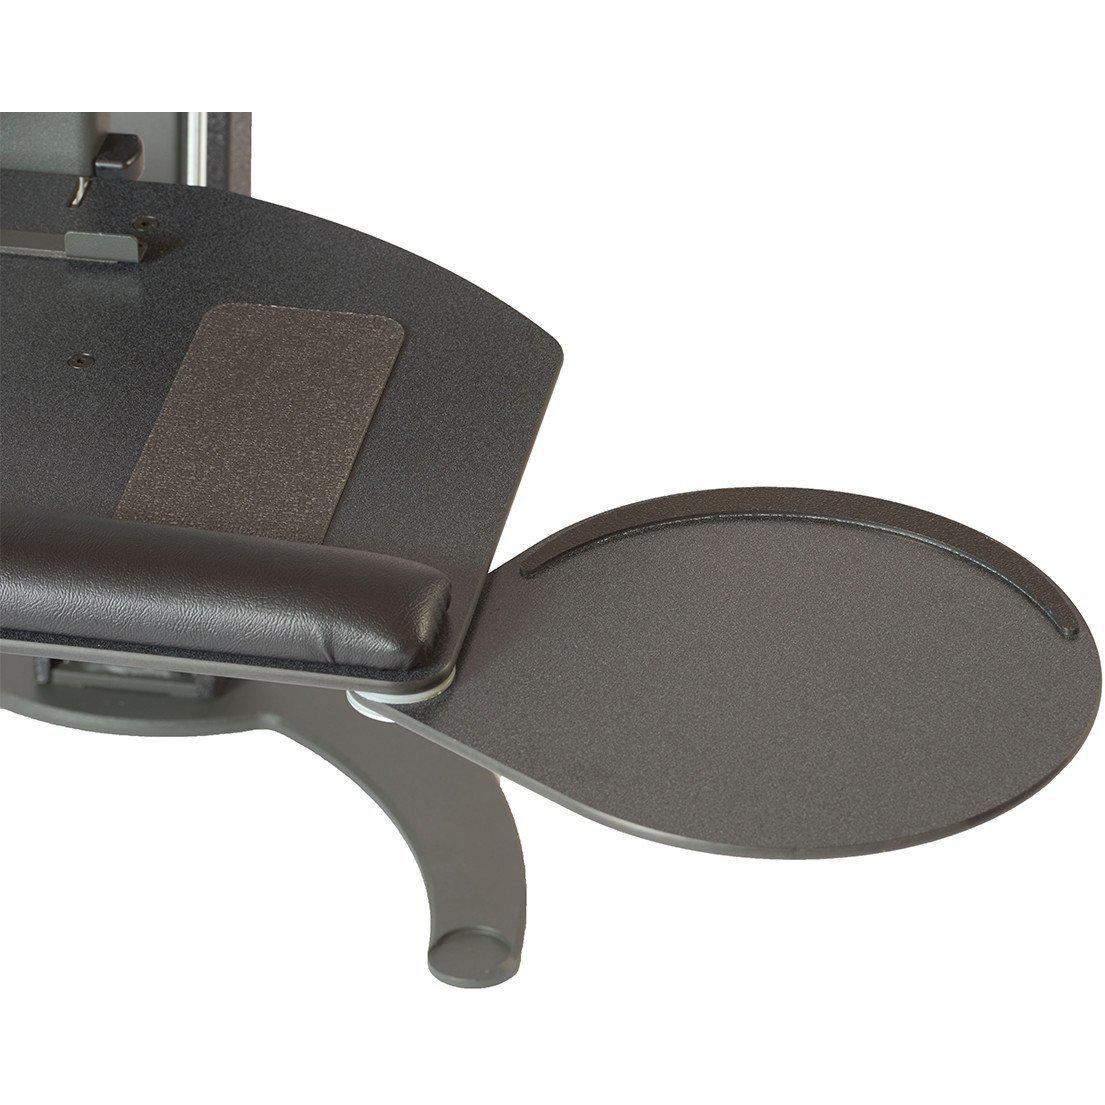 Health Postures 6330 Extra Swing-A-Mouse Tray